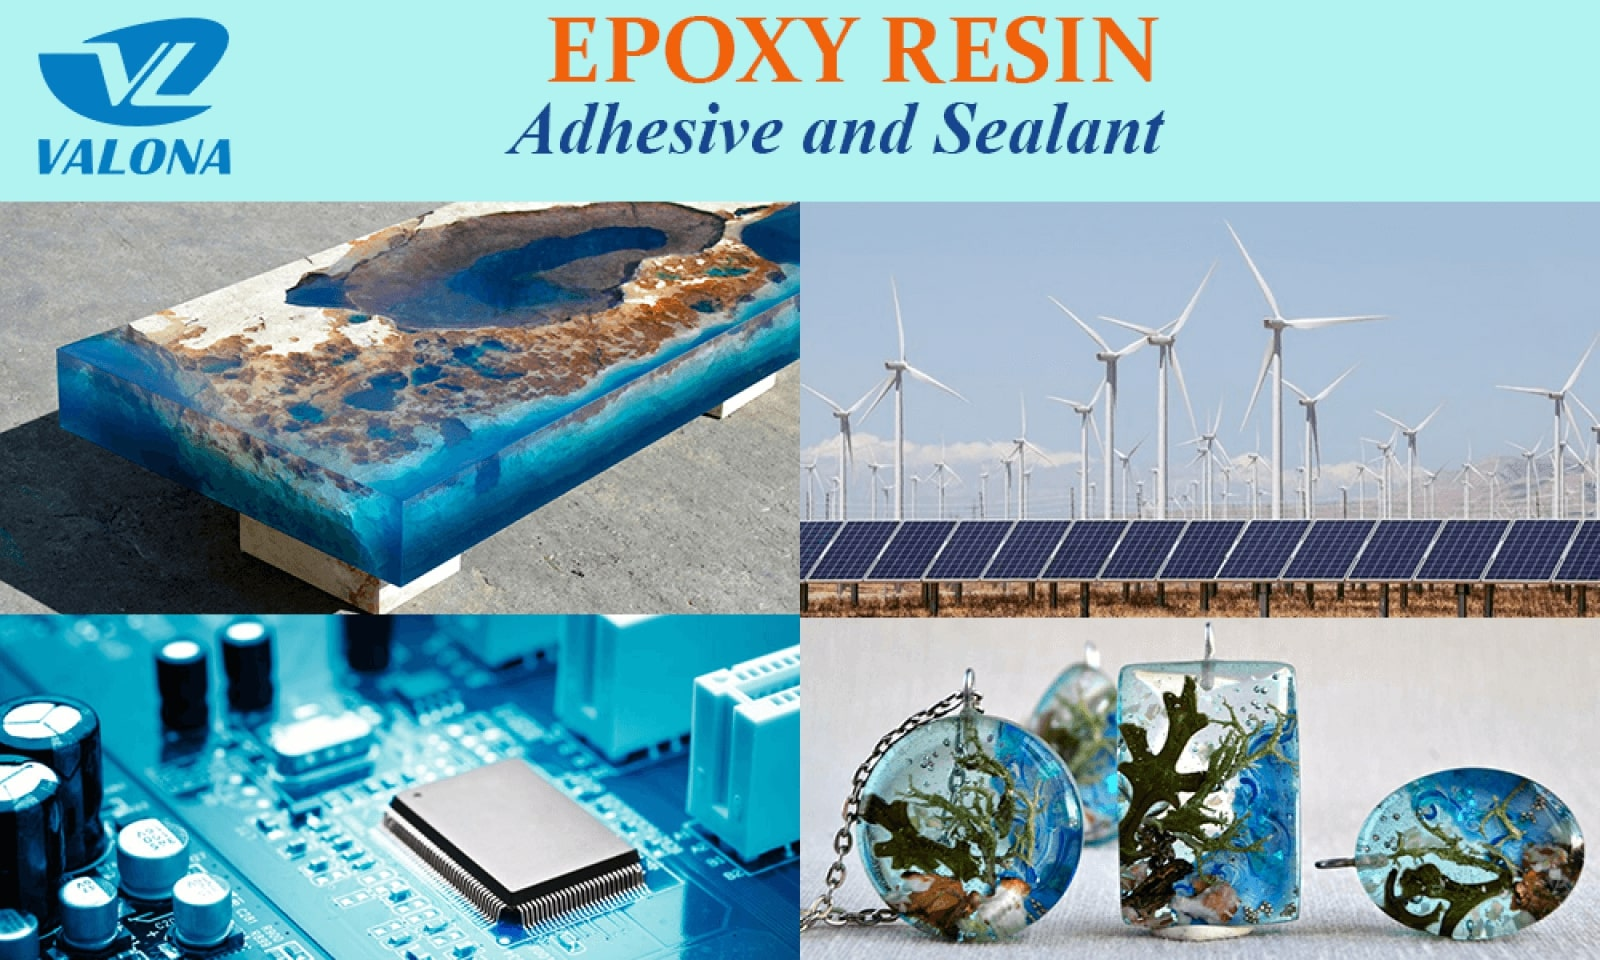 Epoxy resin adhesive